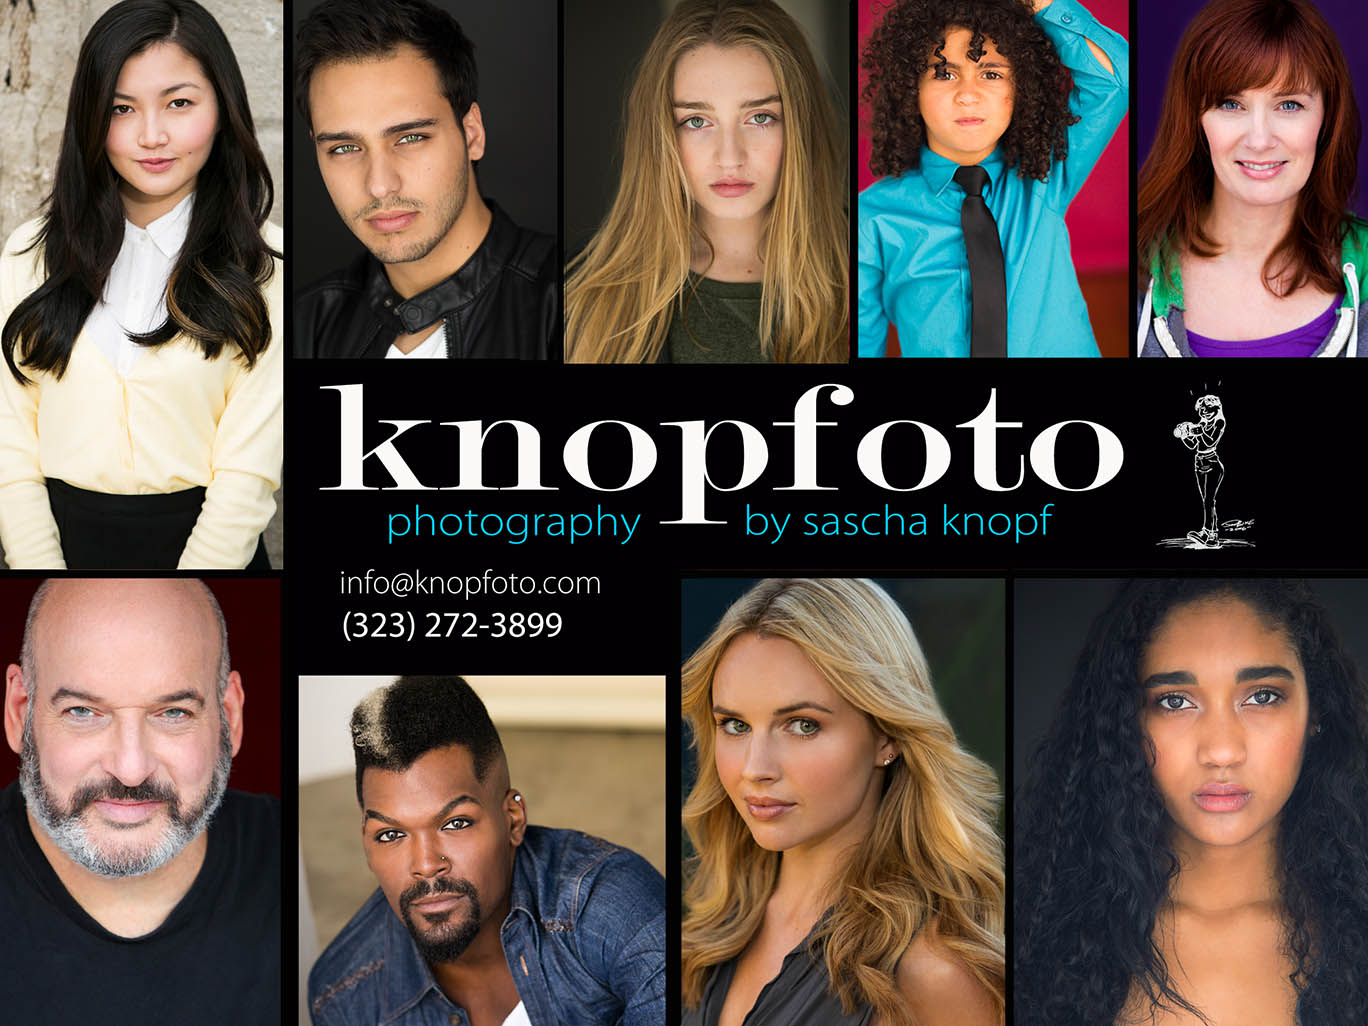 Headshot Photography by Sascha Knopf-Knopfoto